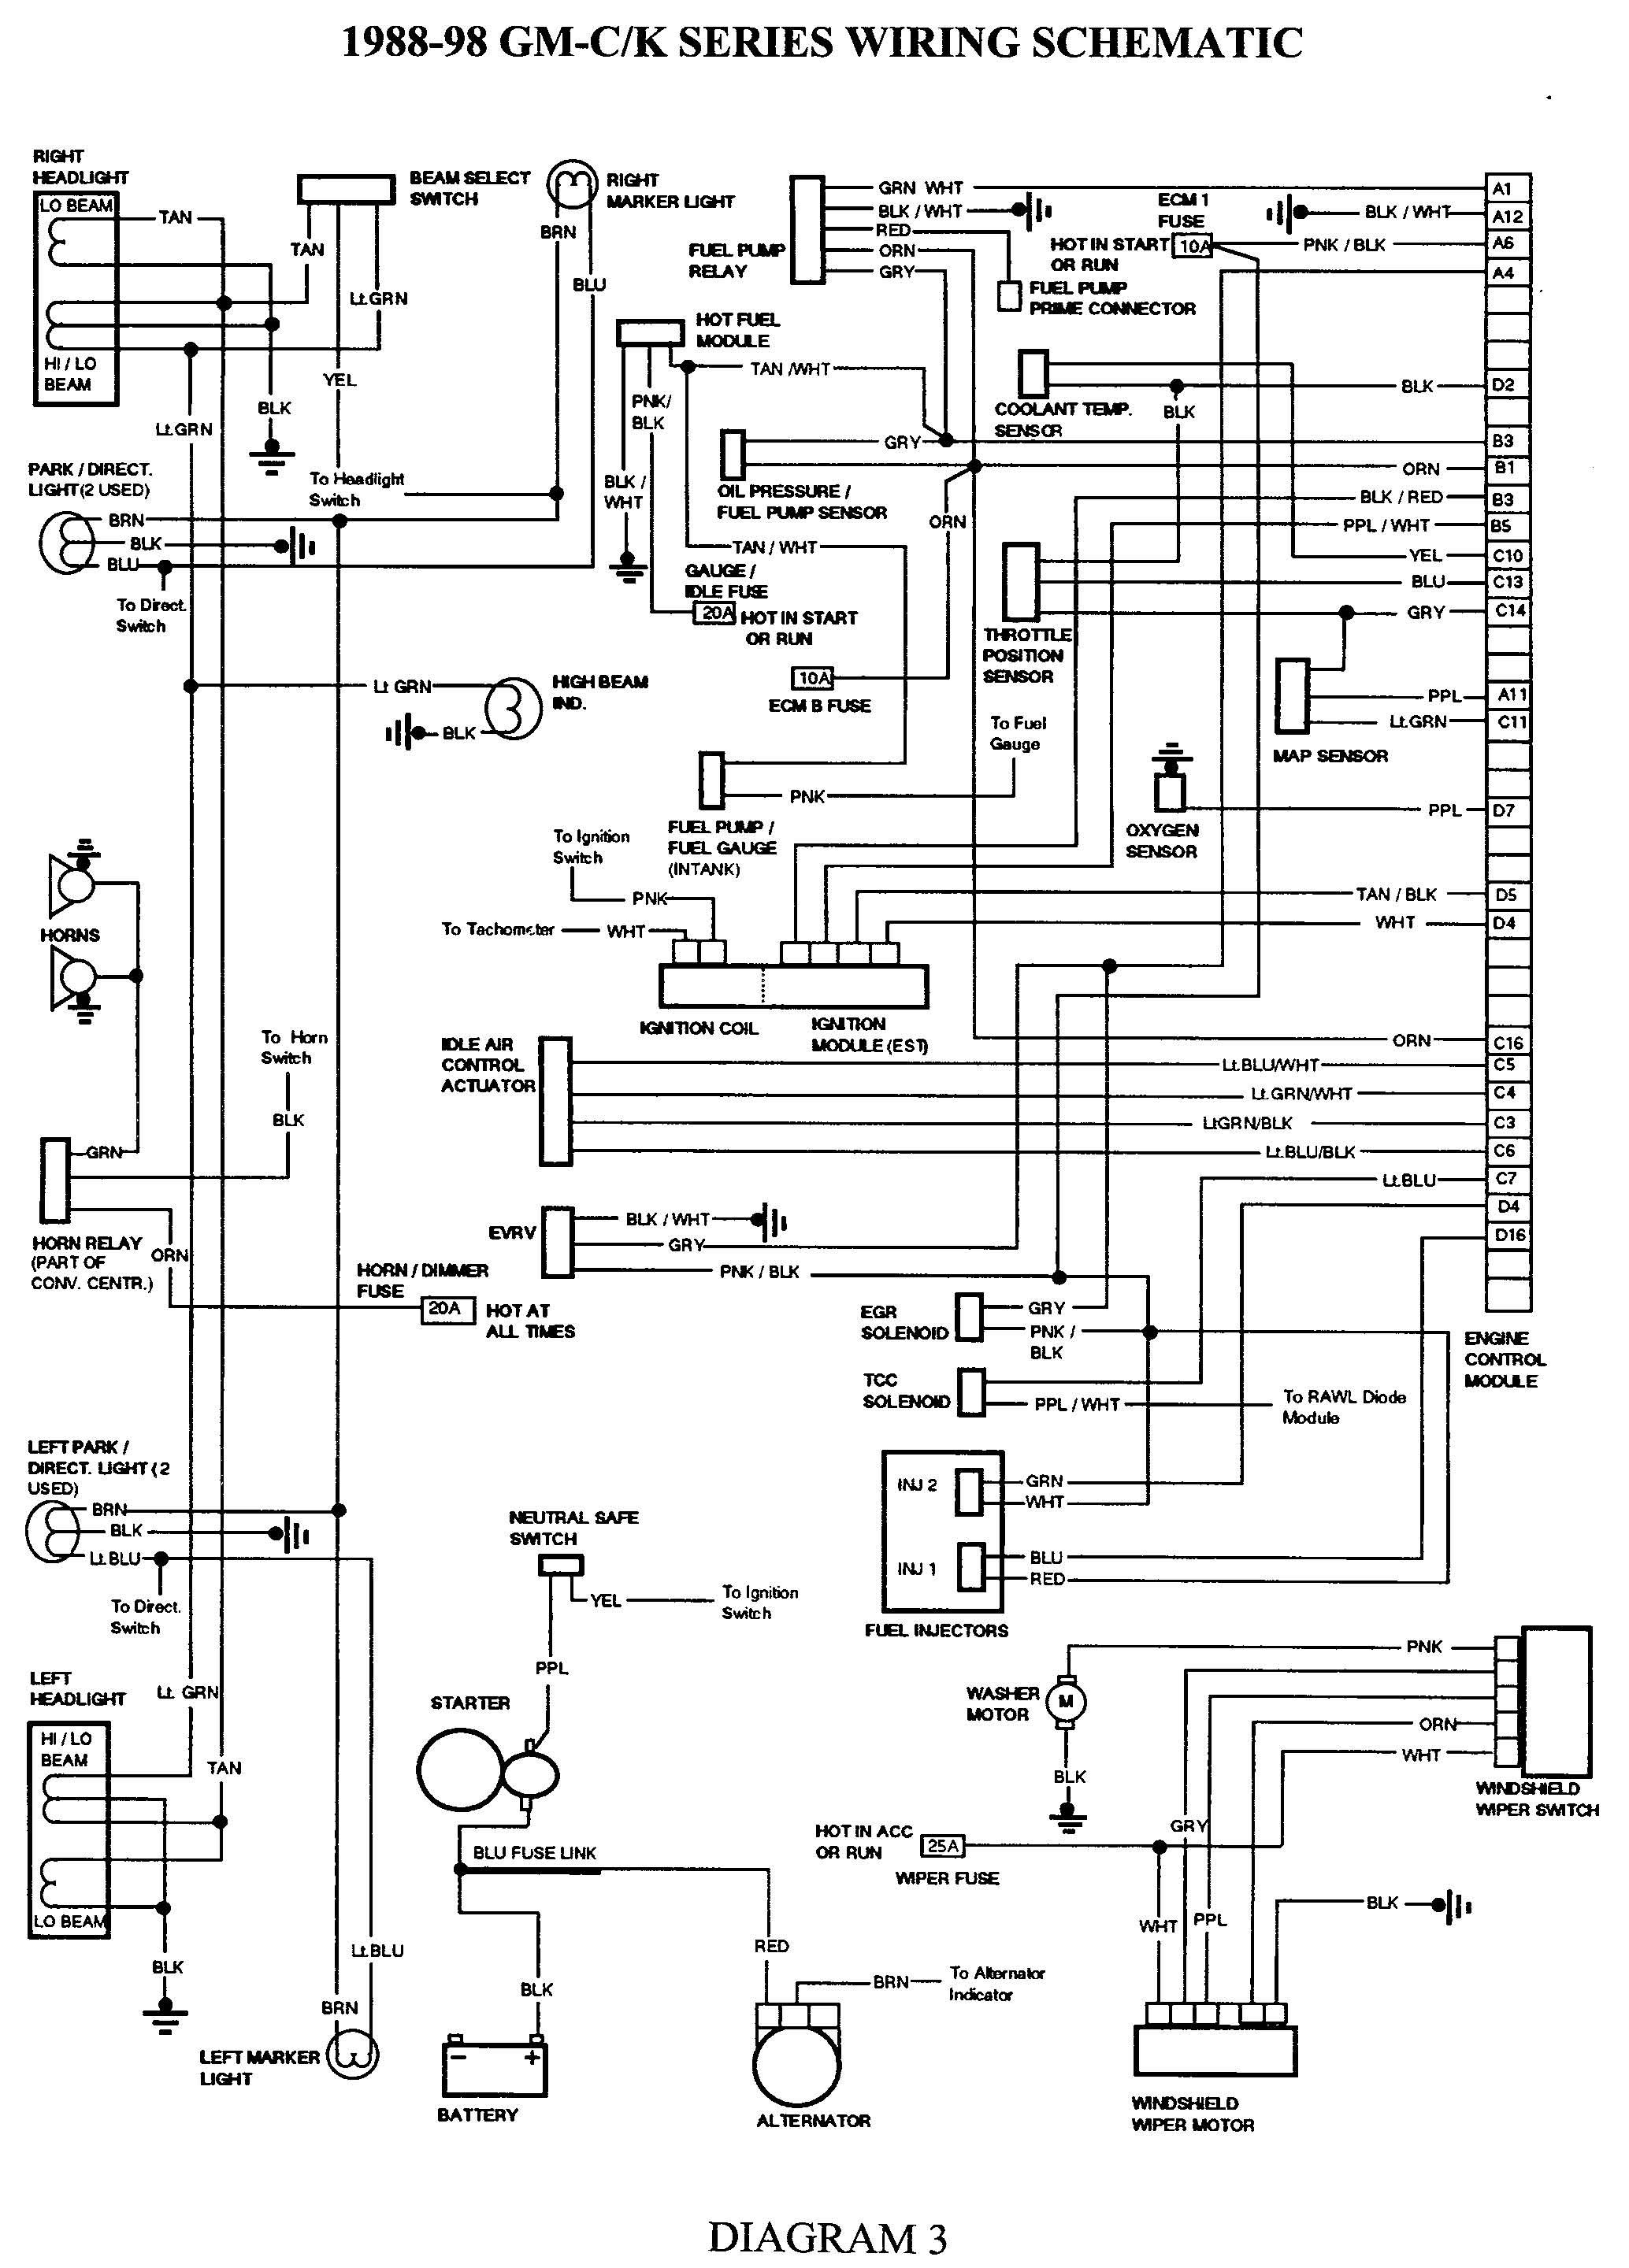 b2f2e5dbdc07dada83ef514f6d4ce3d4 electric wiring diagram instrument panel auto repair Basic Electrical Wiring Diagrams at soozxer.org